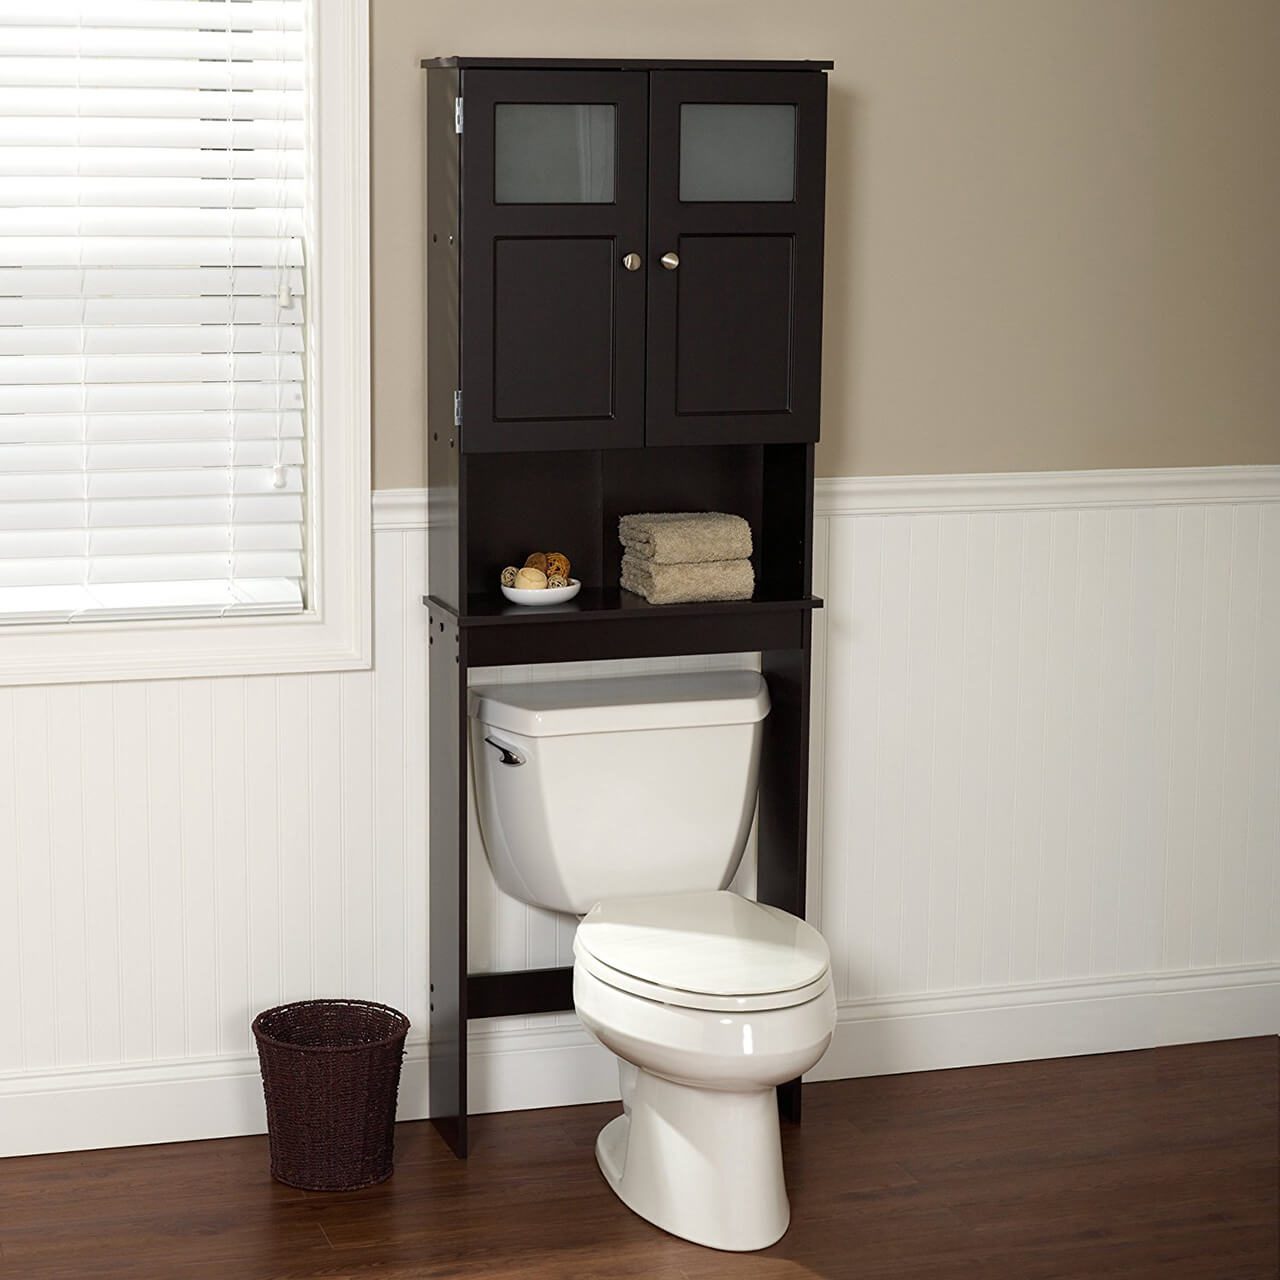 zenna home bathroom spacesaver some beautiful bathroom storage cabinets are made to fit above and around the toilet - Bathroom Cabinets That Fit Over The Toilet